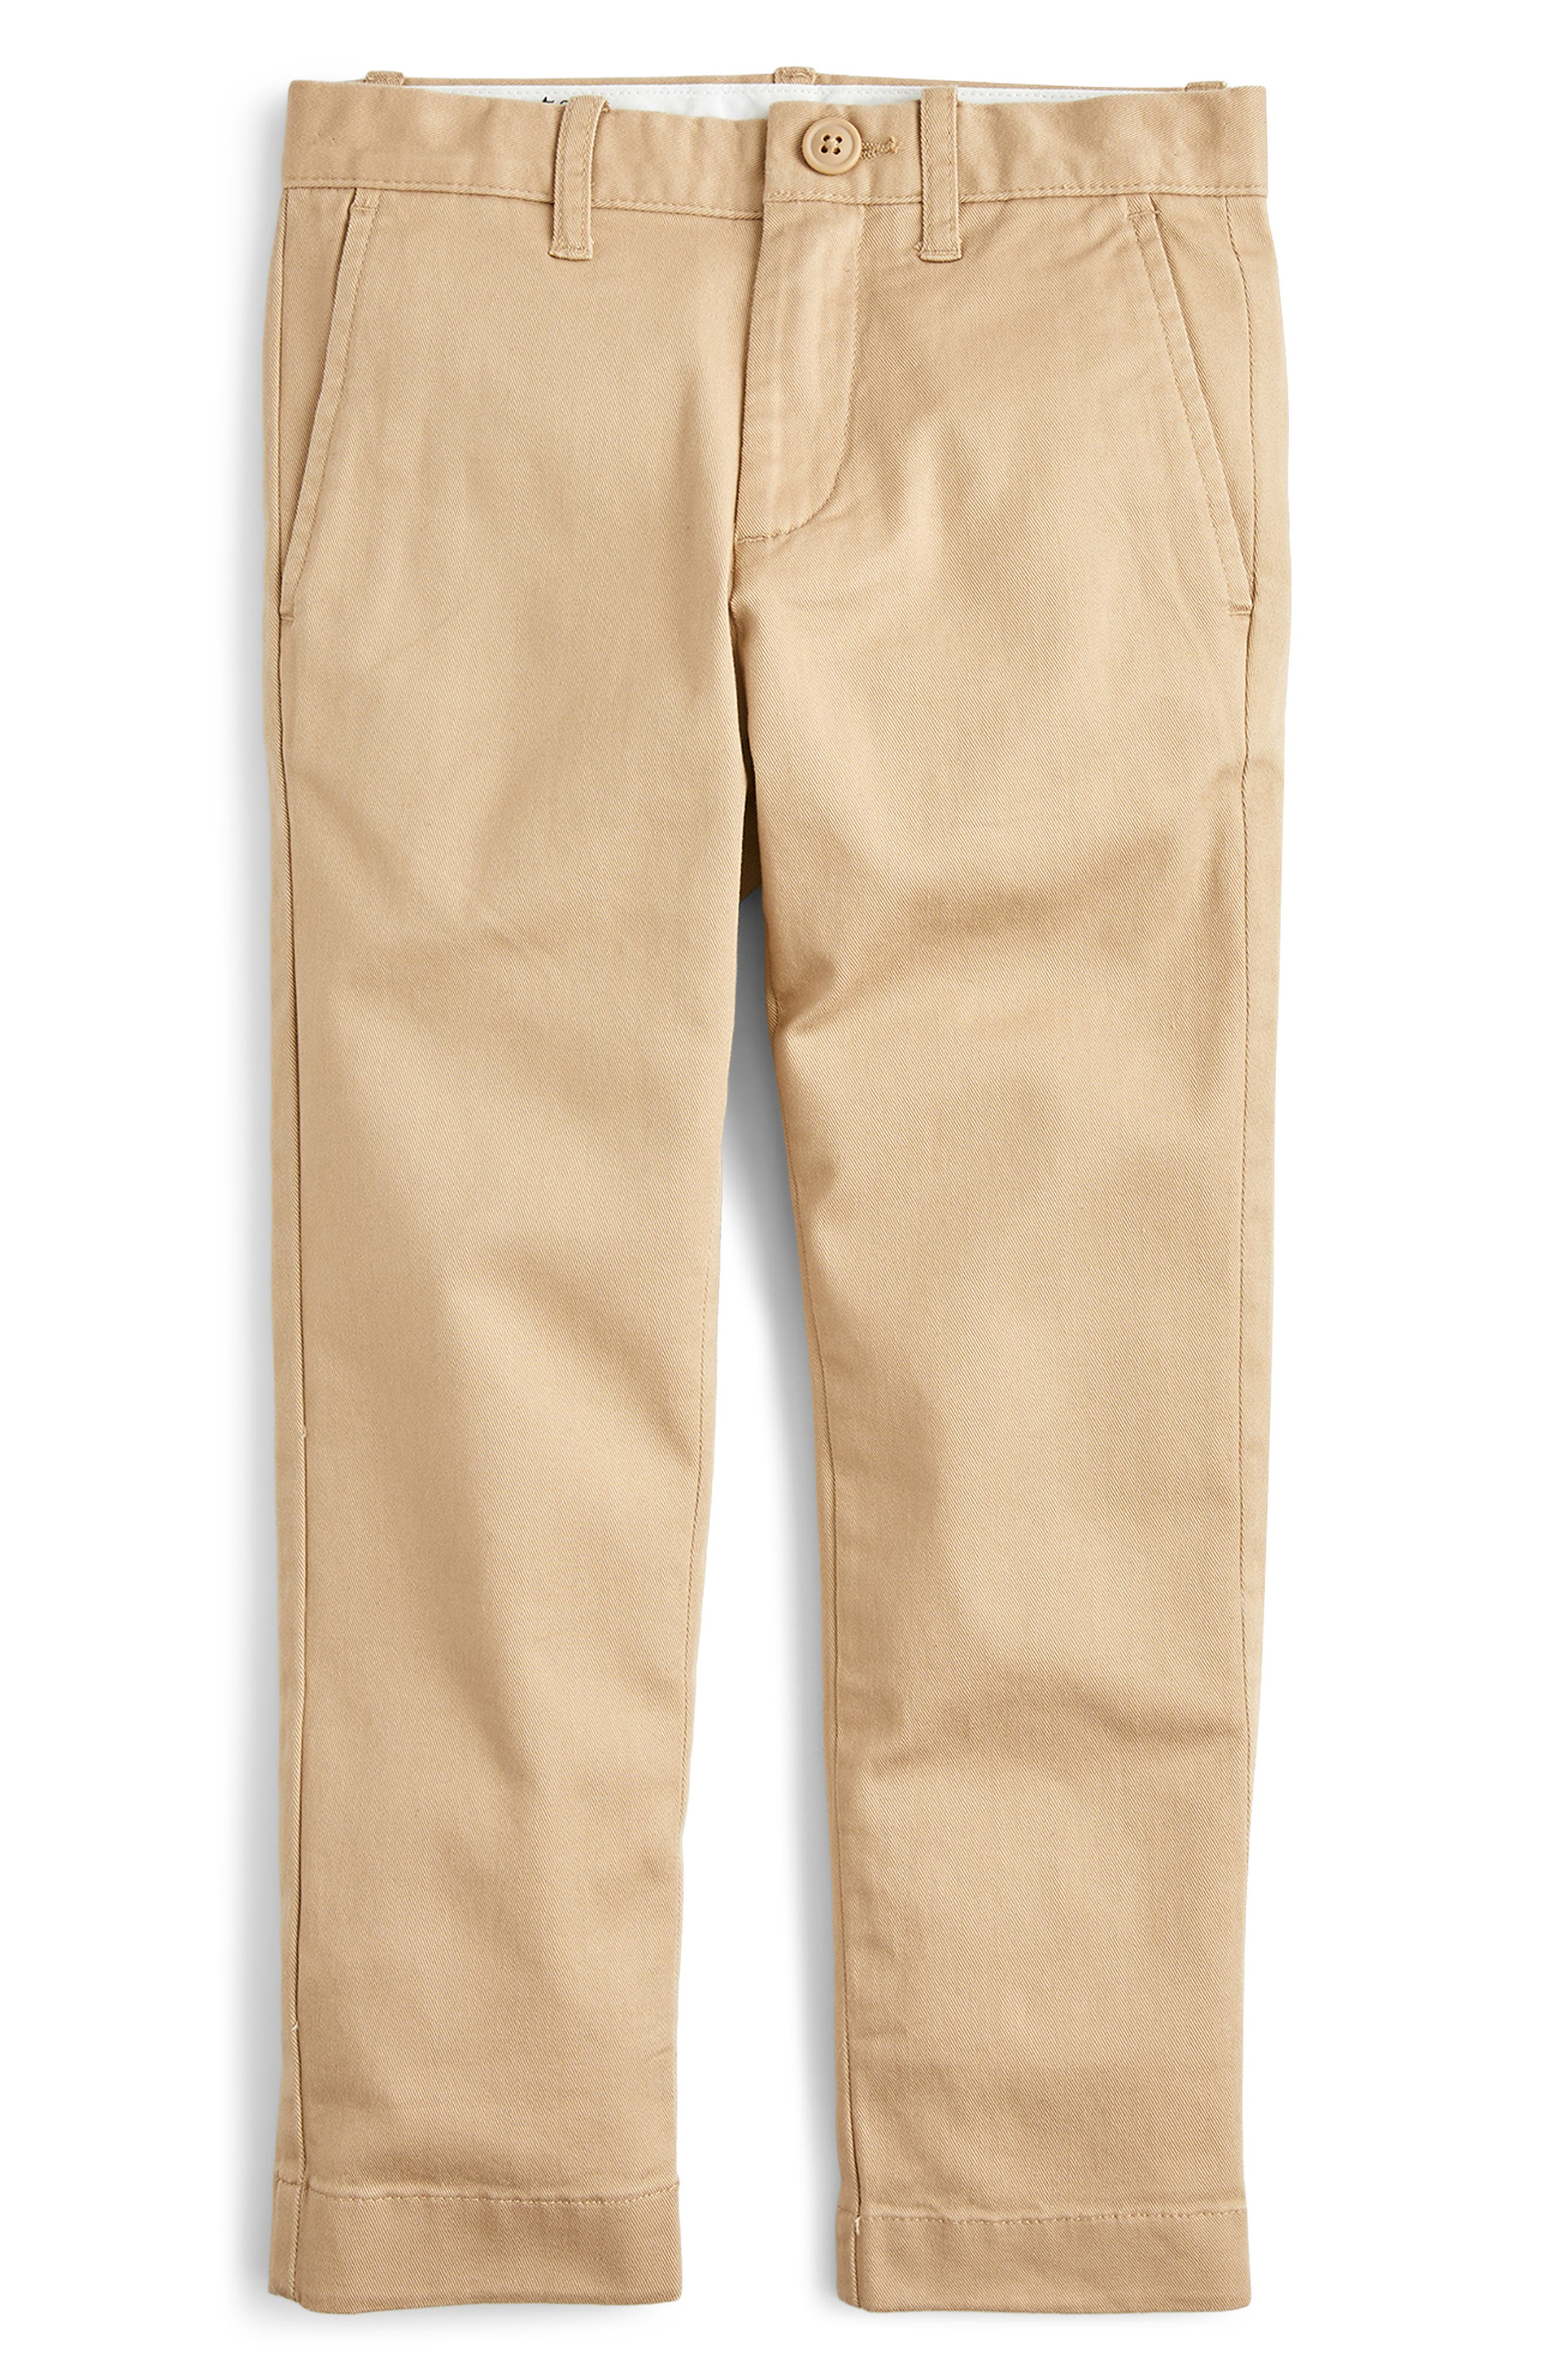 Boys Crewcuts By Jcrew Chino Pants Size 16  Brown